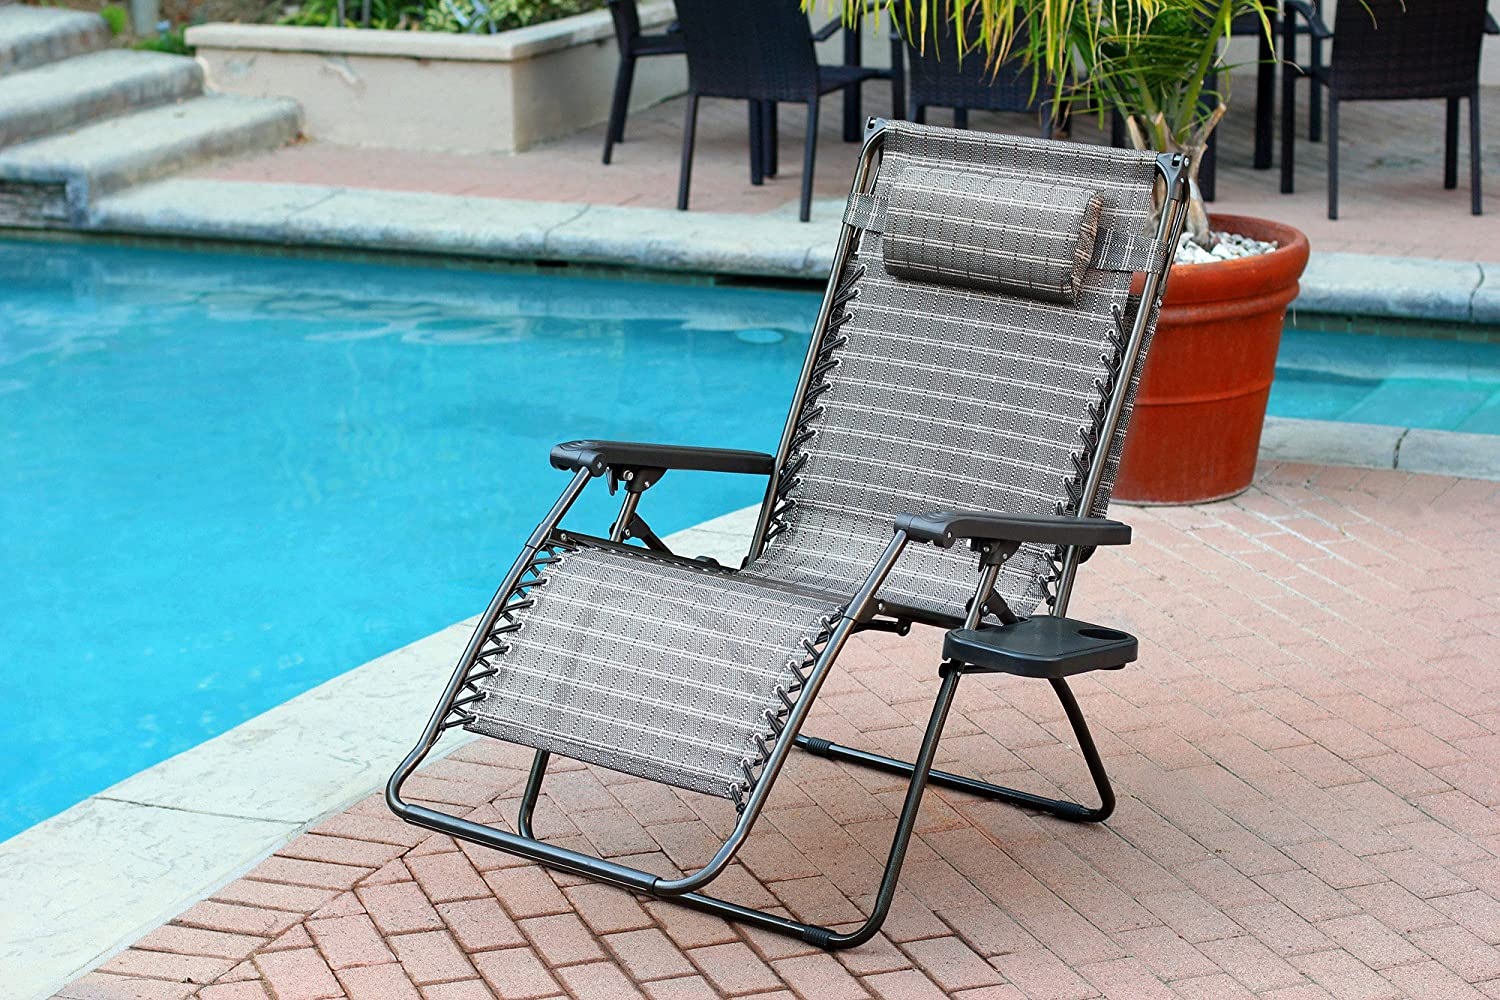 Set of 2 Oversized Zero Gravity Chair with Sunshade and Drink Tray – Black and Tan